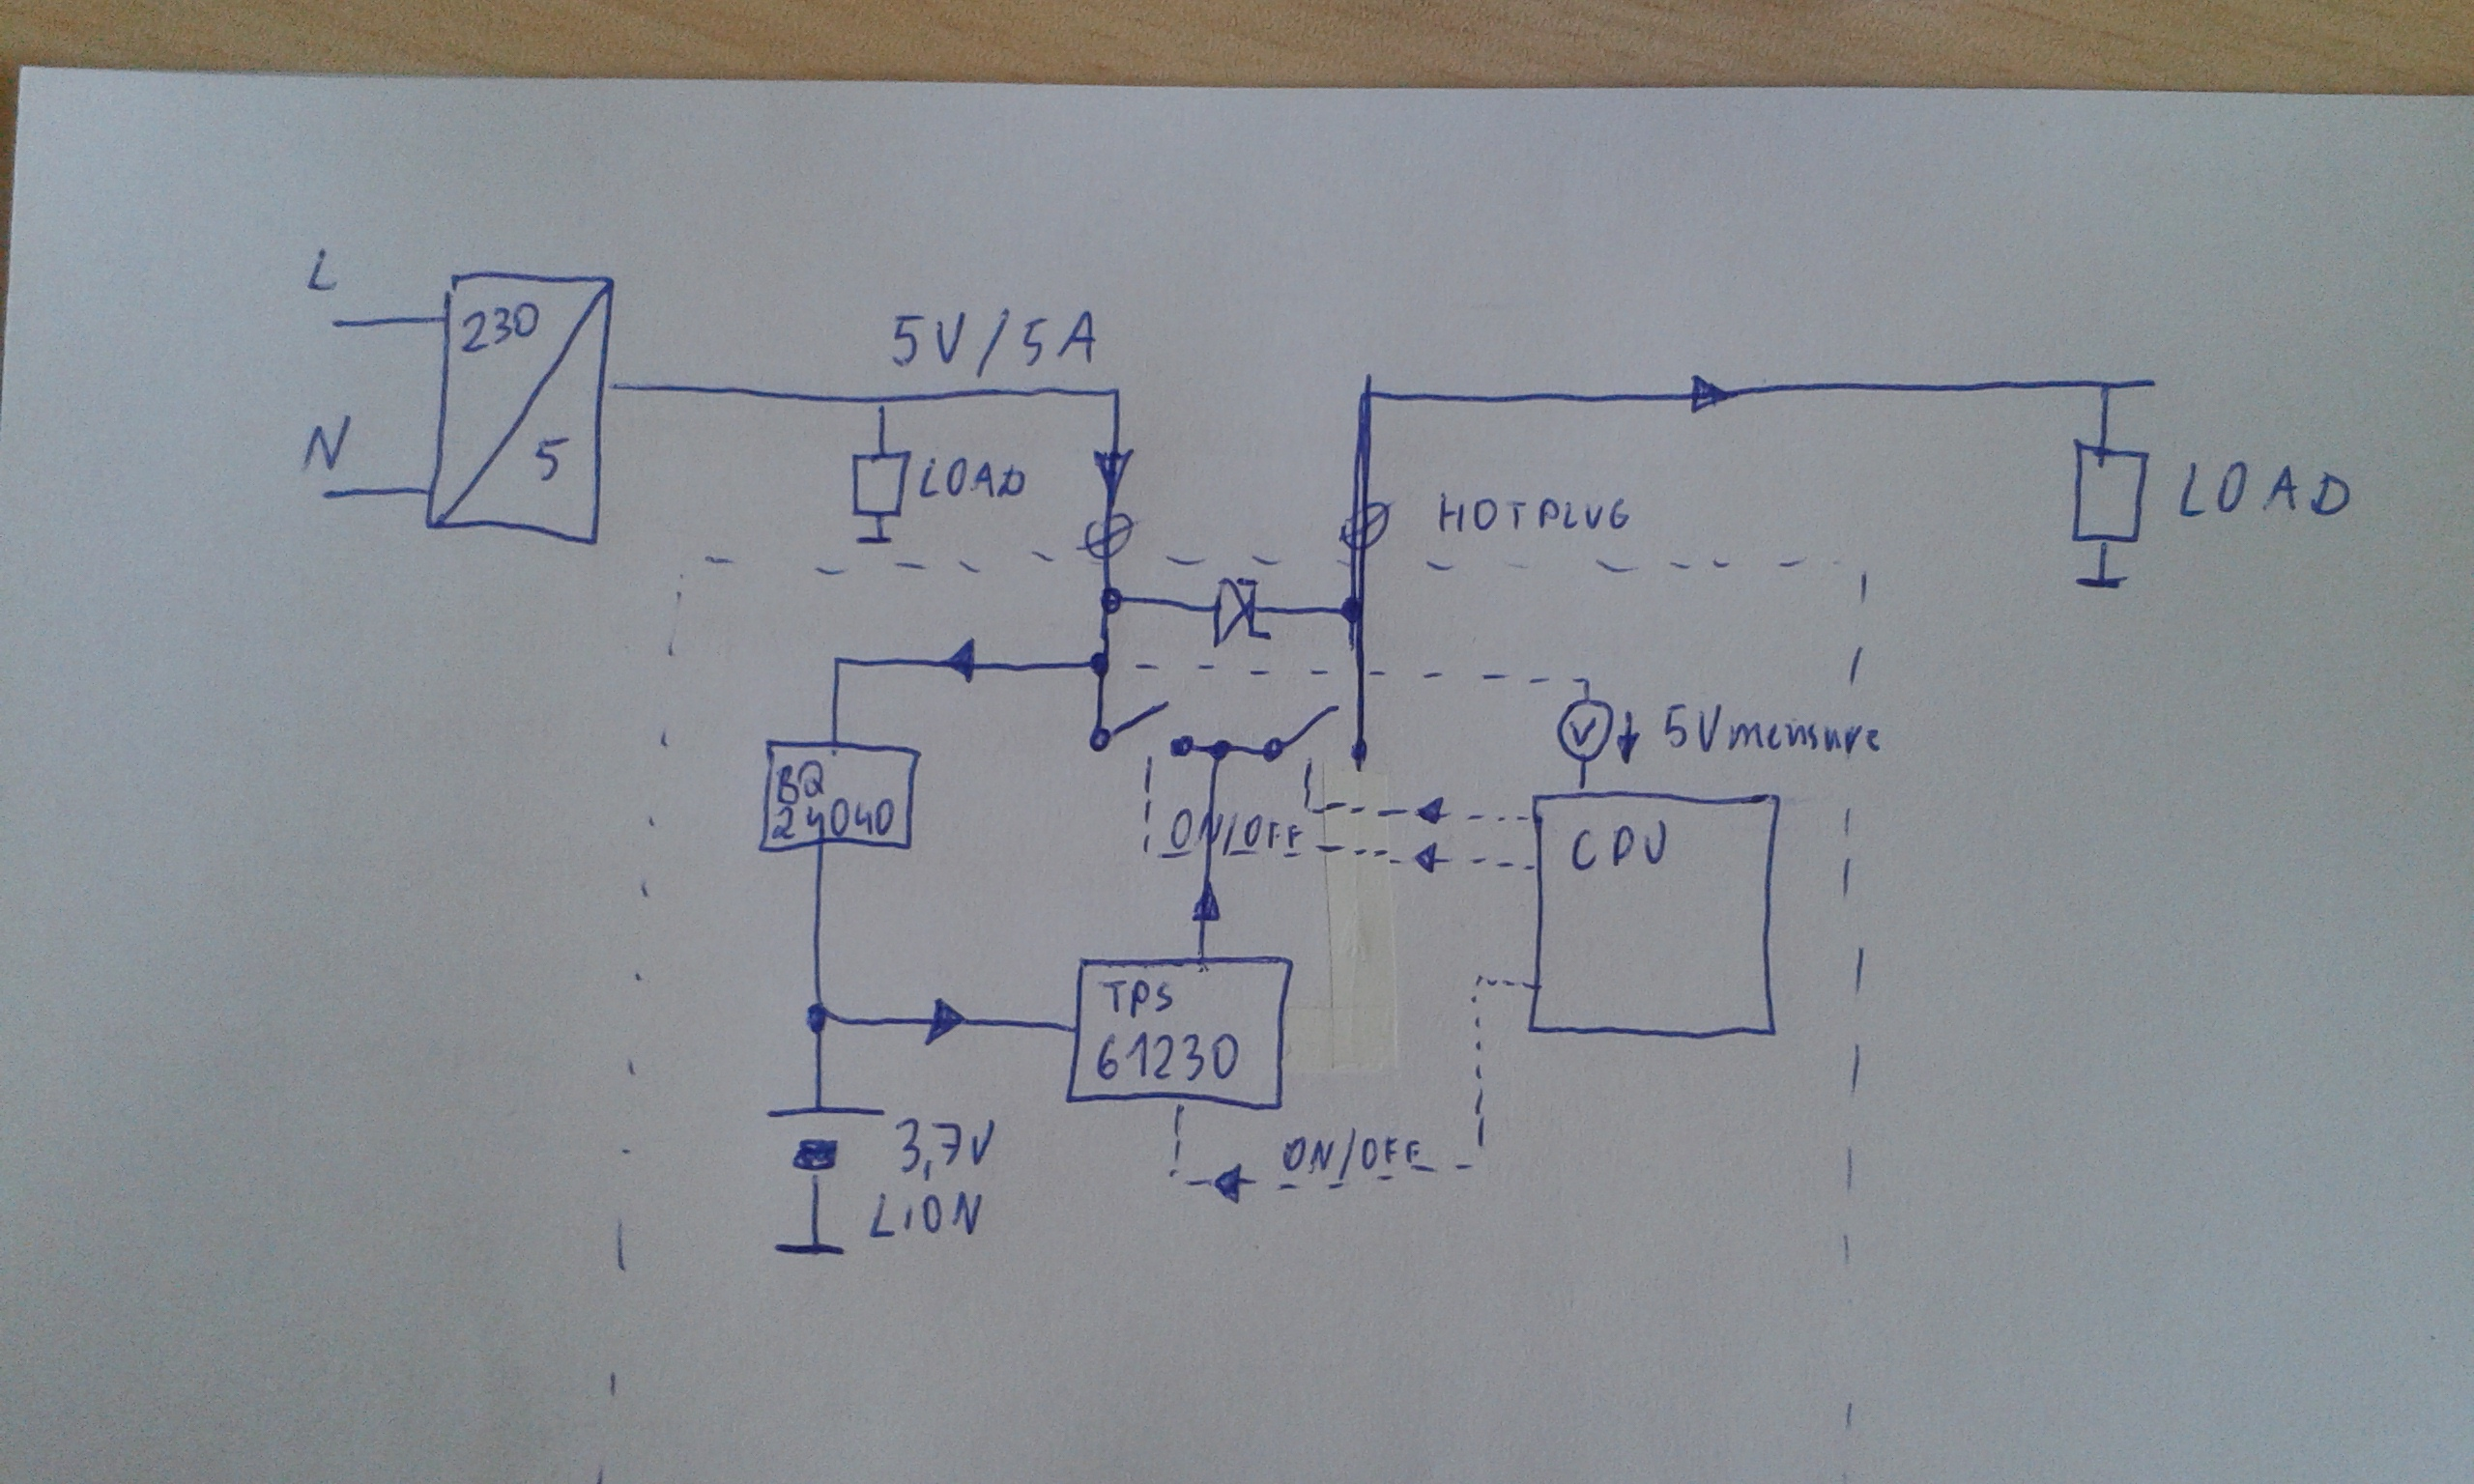 Tps6123x Burn Power Management Forum Ti E2e Supply Non Isolated Dc Vin Normally When Main 5v Is Ok 99999 Time Of Work Left And Right Switch Are In On State